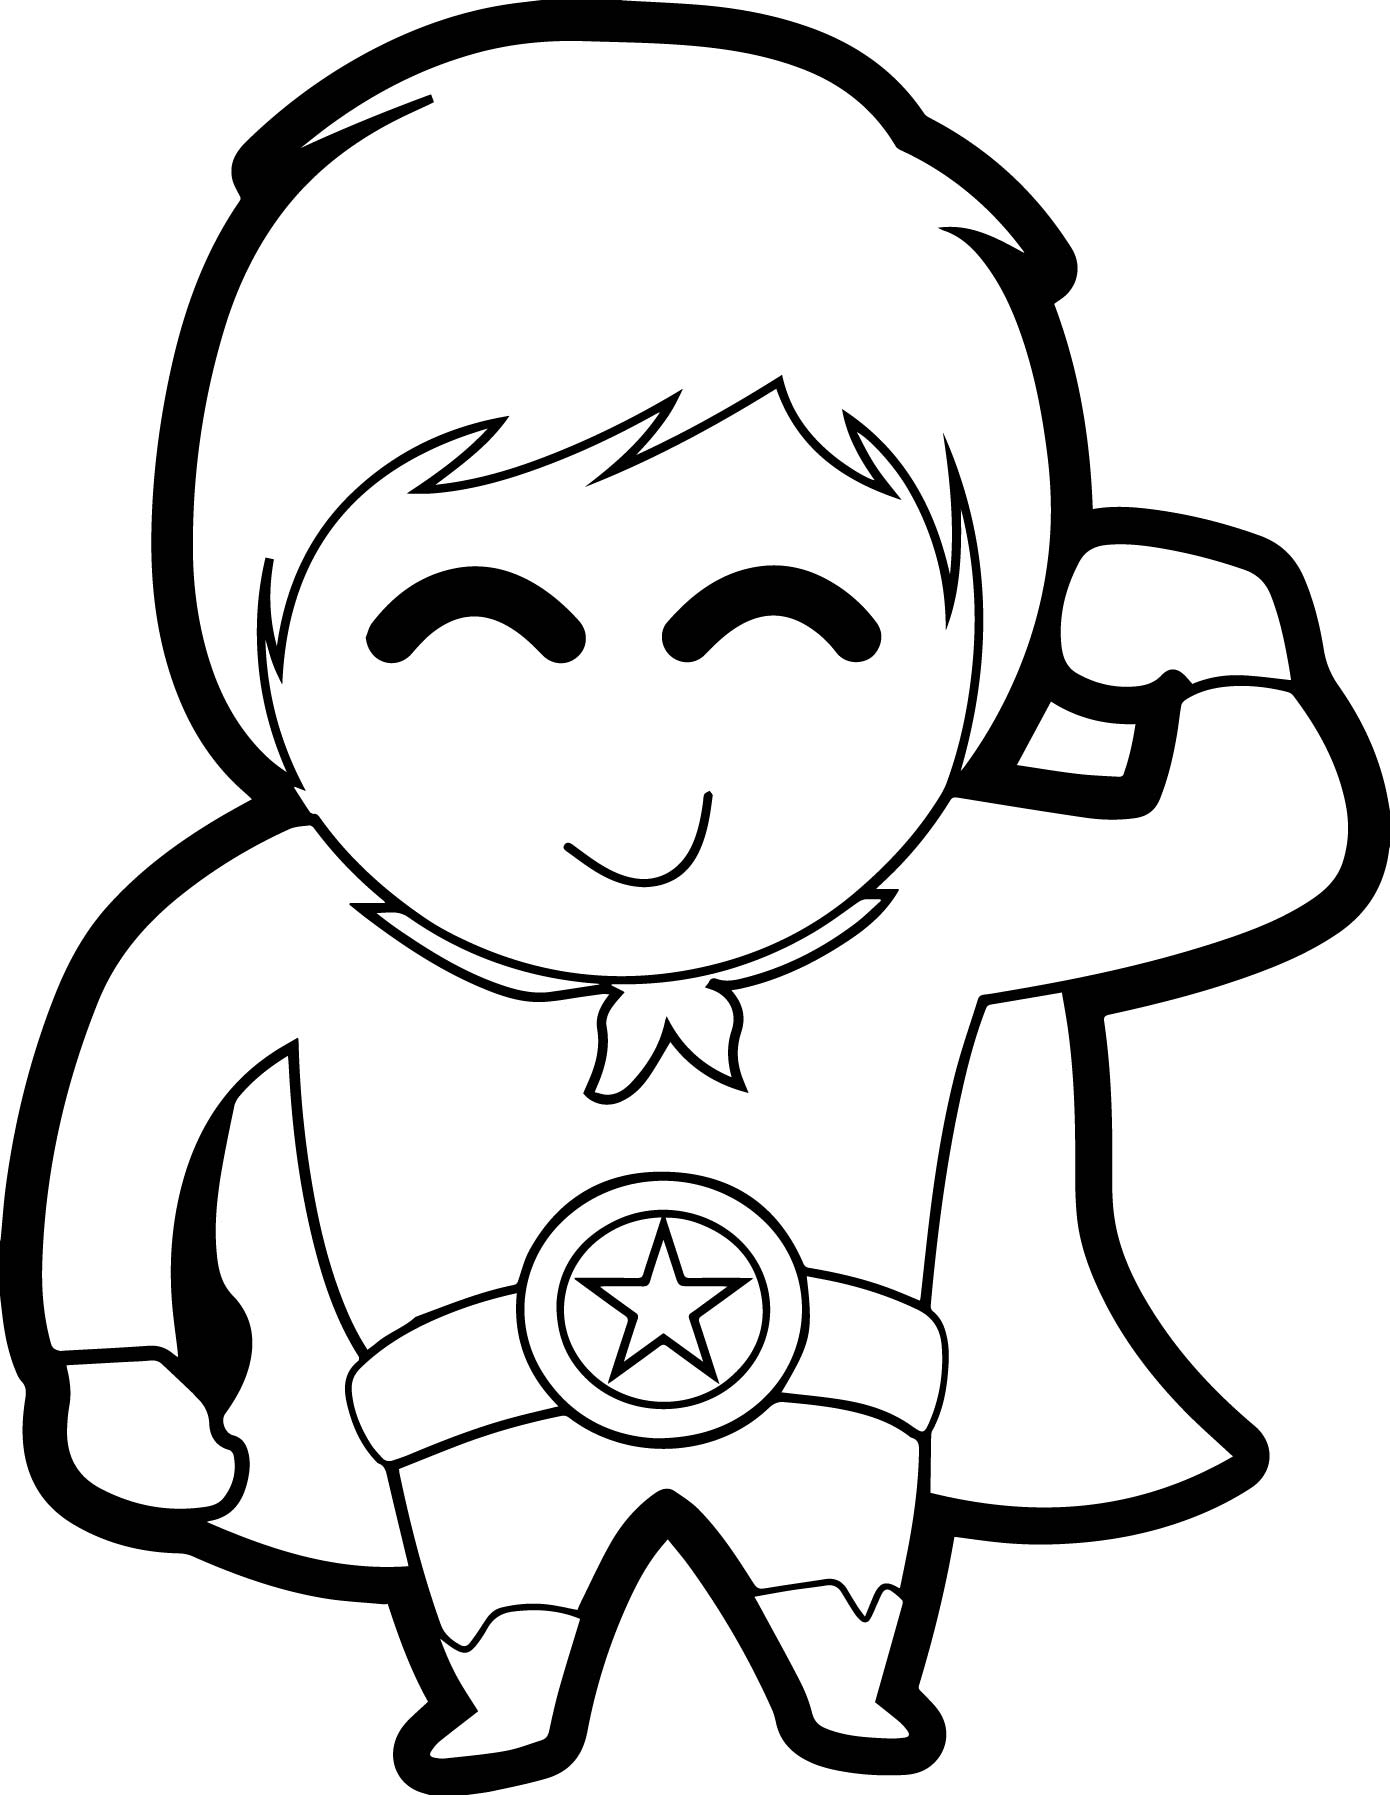 1390x1795 Cute Boy Heroes Coloring Page Wecoloringpage